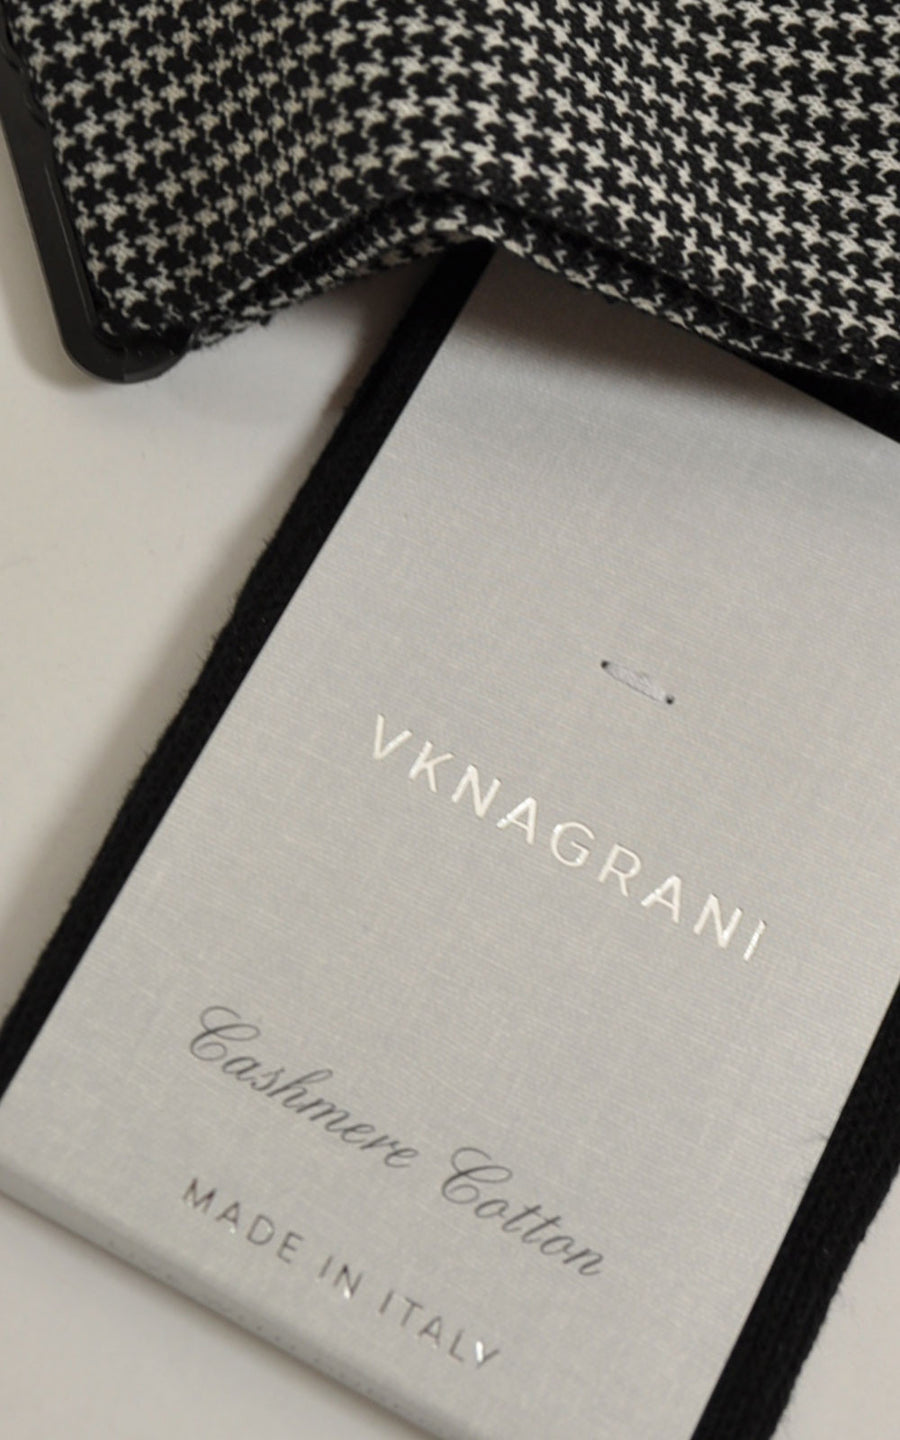 VK Nagrani Socks Cashmere Cotton Black Gray Houndstooth